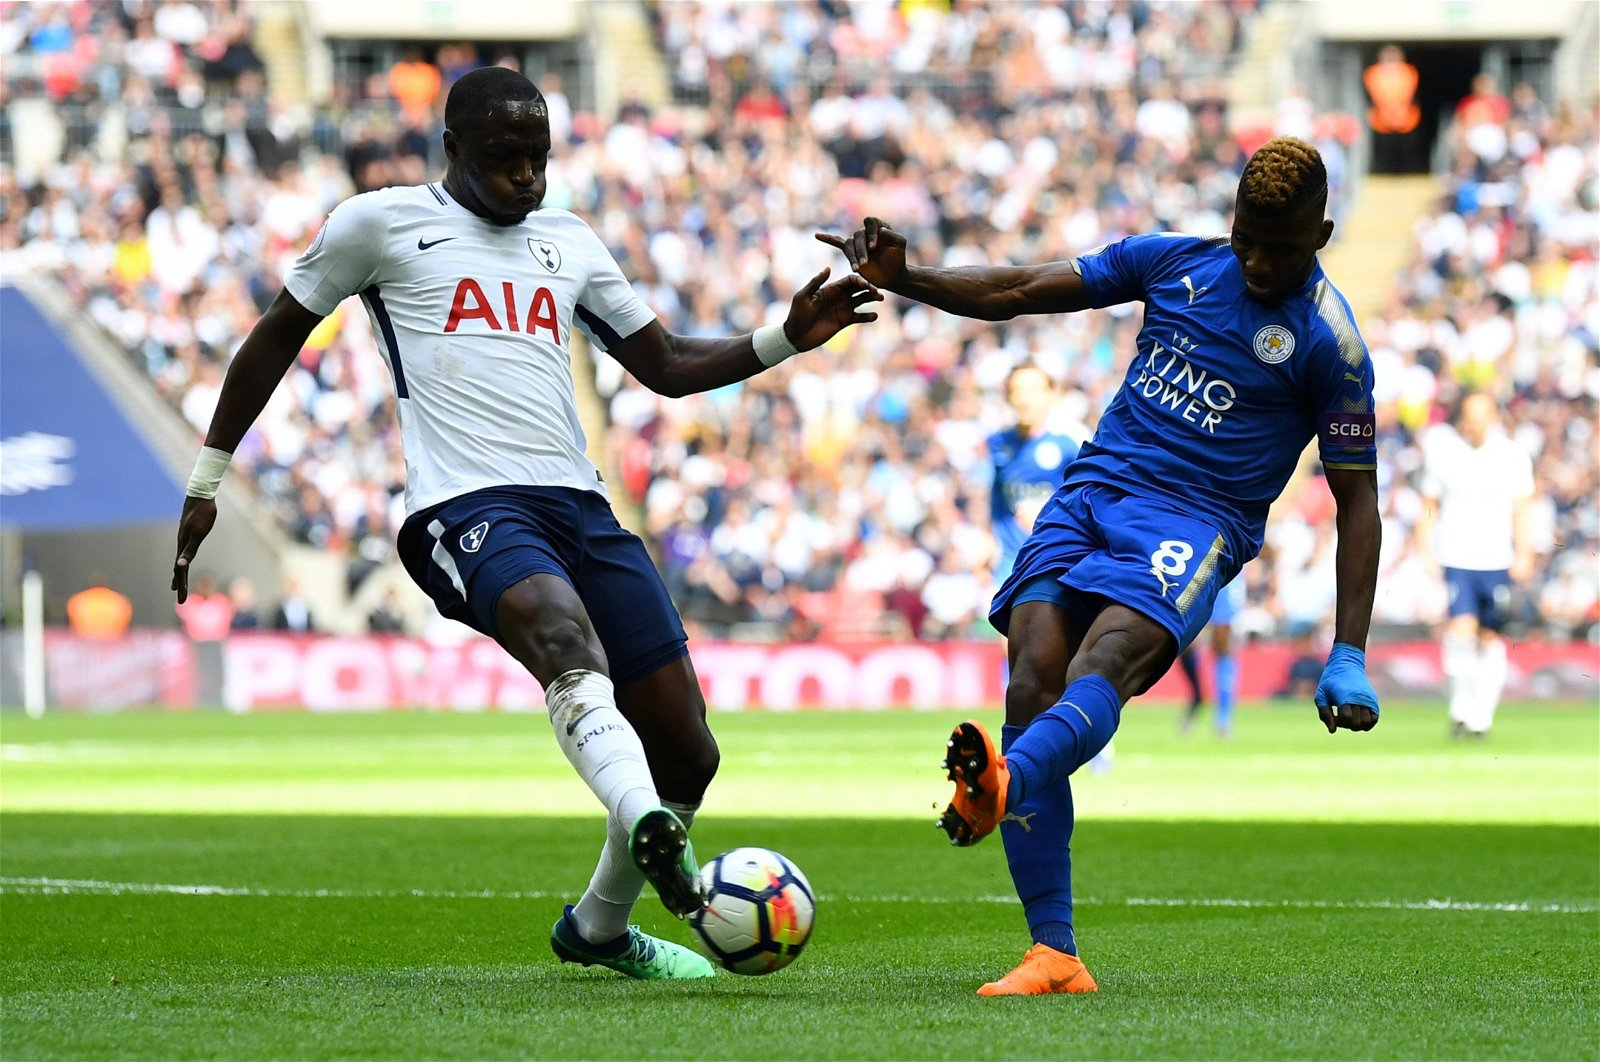 Moussa Sissoko in action for Tottenham Hotspur against Leicester City